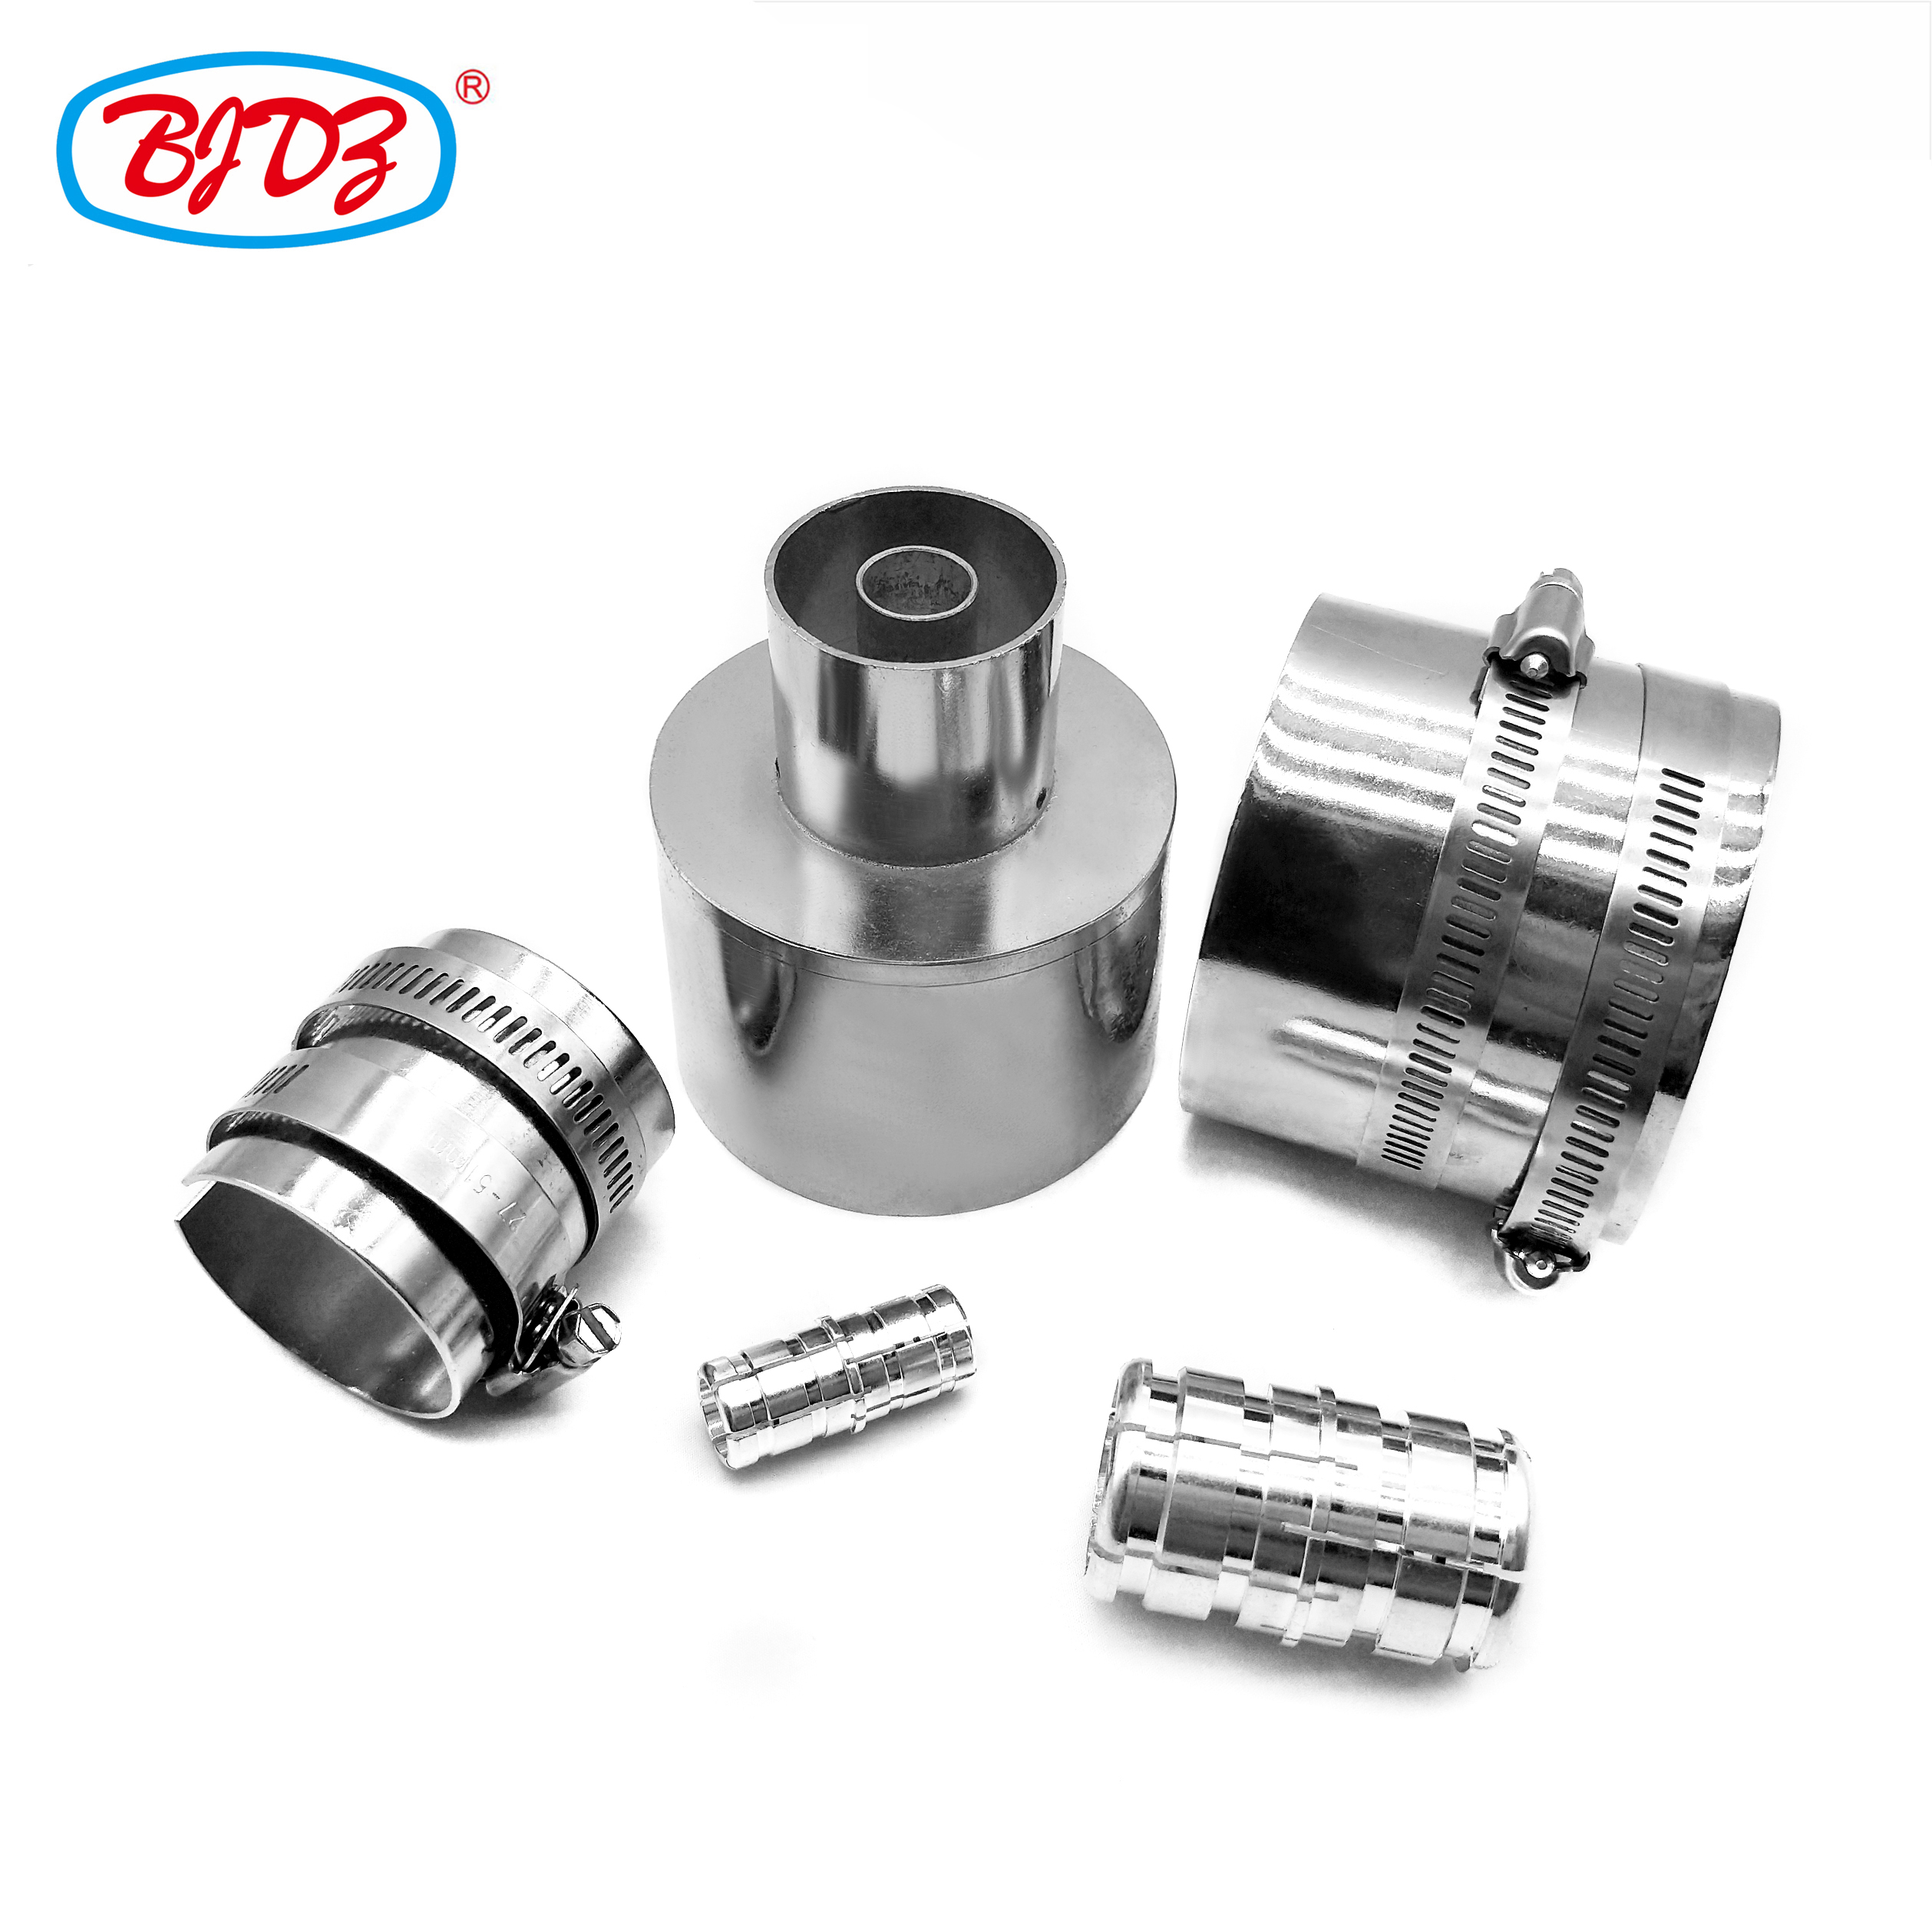 RF coaxial connector adapter 1-3/8 EIA to 1-5/8 EIA flange adapter eia flange connector for solid feeder cable